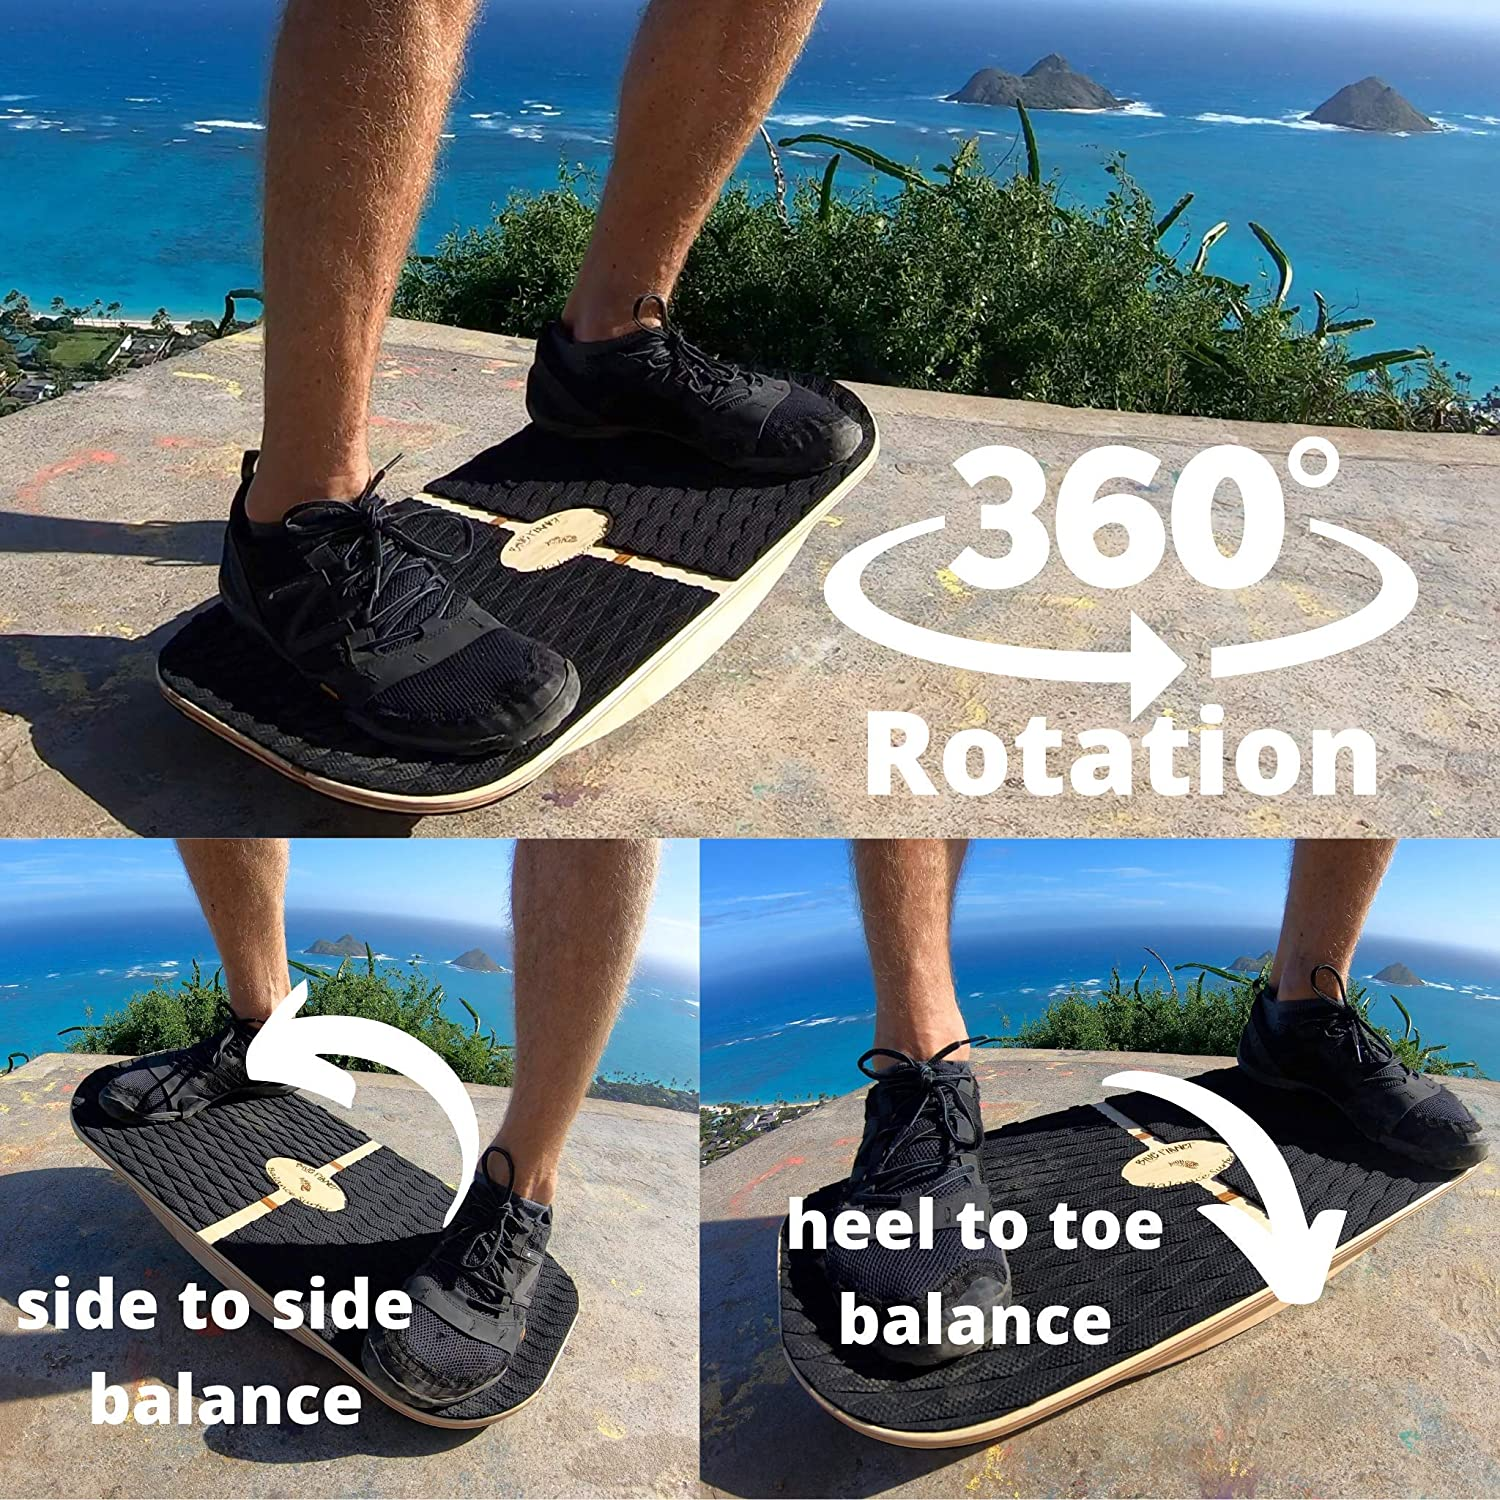 Sup Physical Therapy Gym /& Home Yoga Exercise!/… Great for Standing Desks Blue Planet Balance Surfer 7-in-1 Bamboo Wooden Balance Board Trainer for Office Surfing